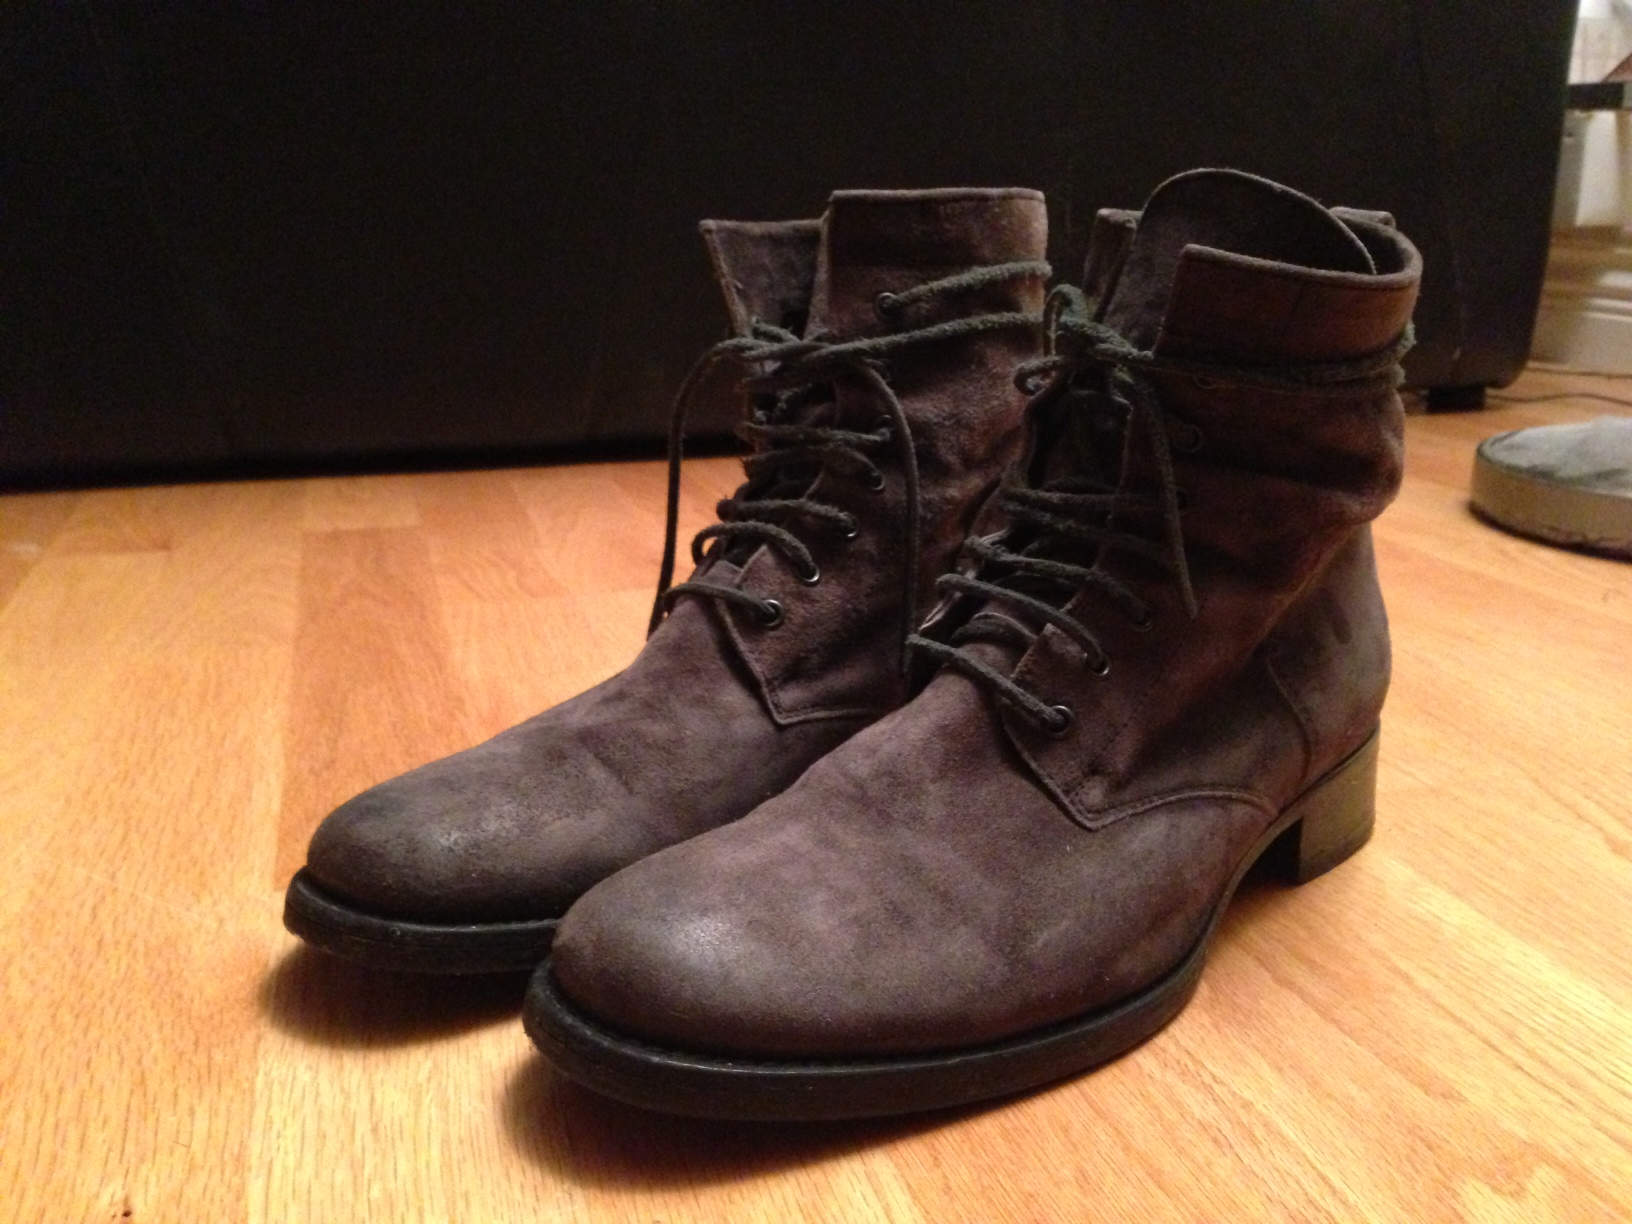 FS: Buttero Work Boot in Grey Suede